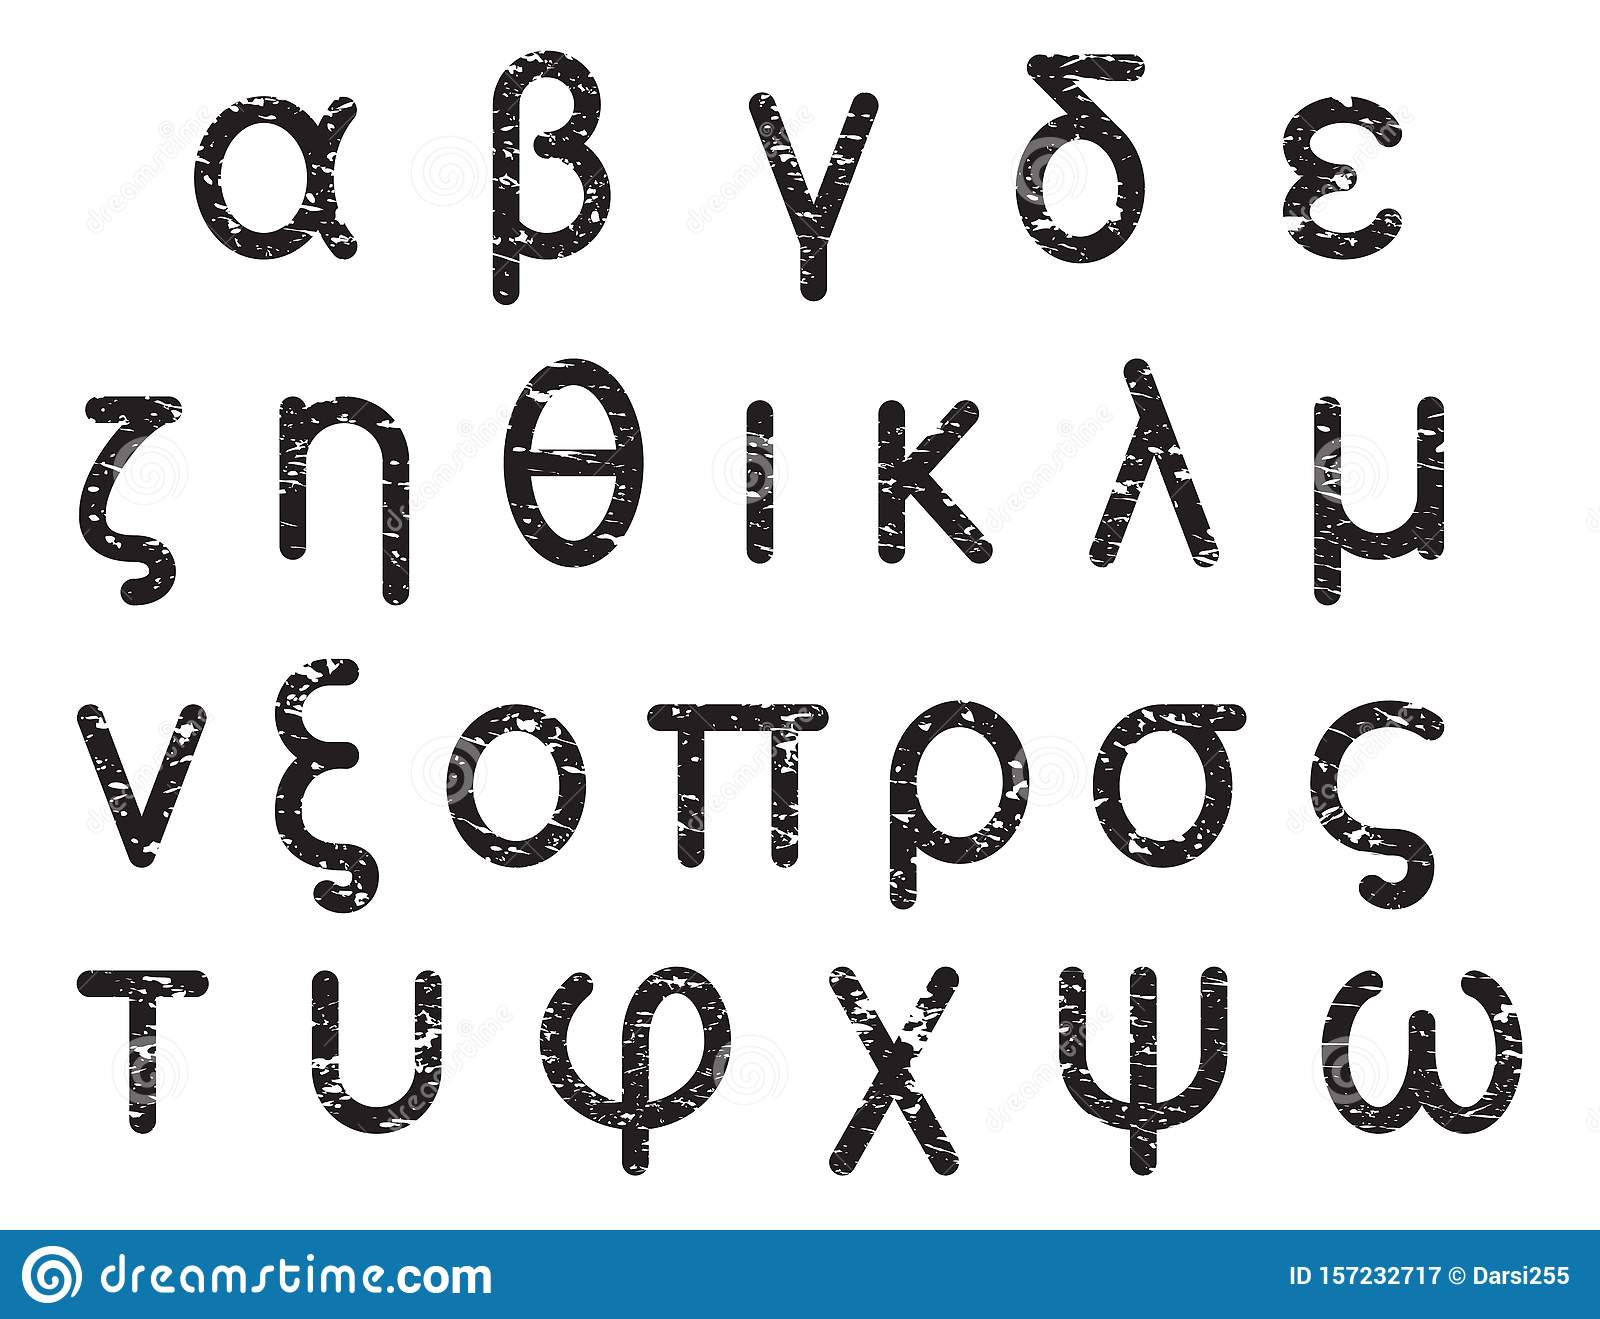 Greek alphabet grunge letters, font set, with round corners, black isolated on white background, vector illustration.